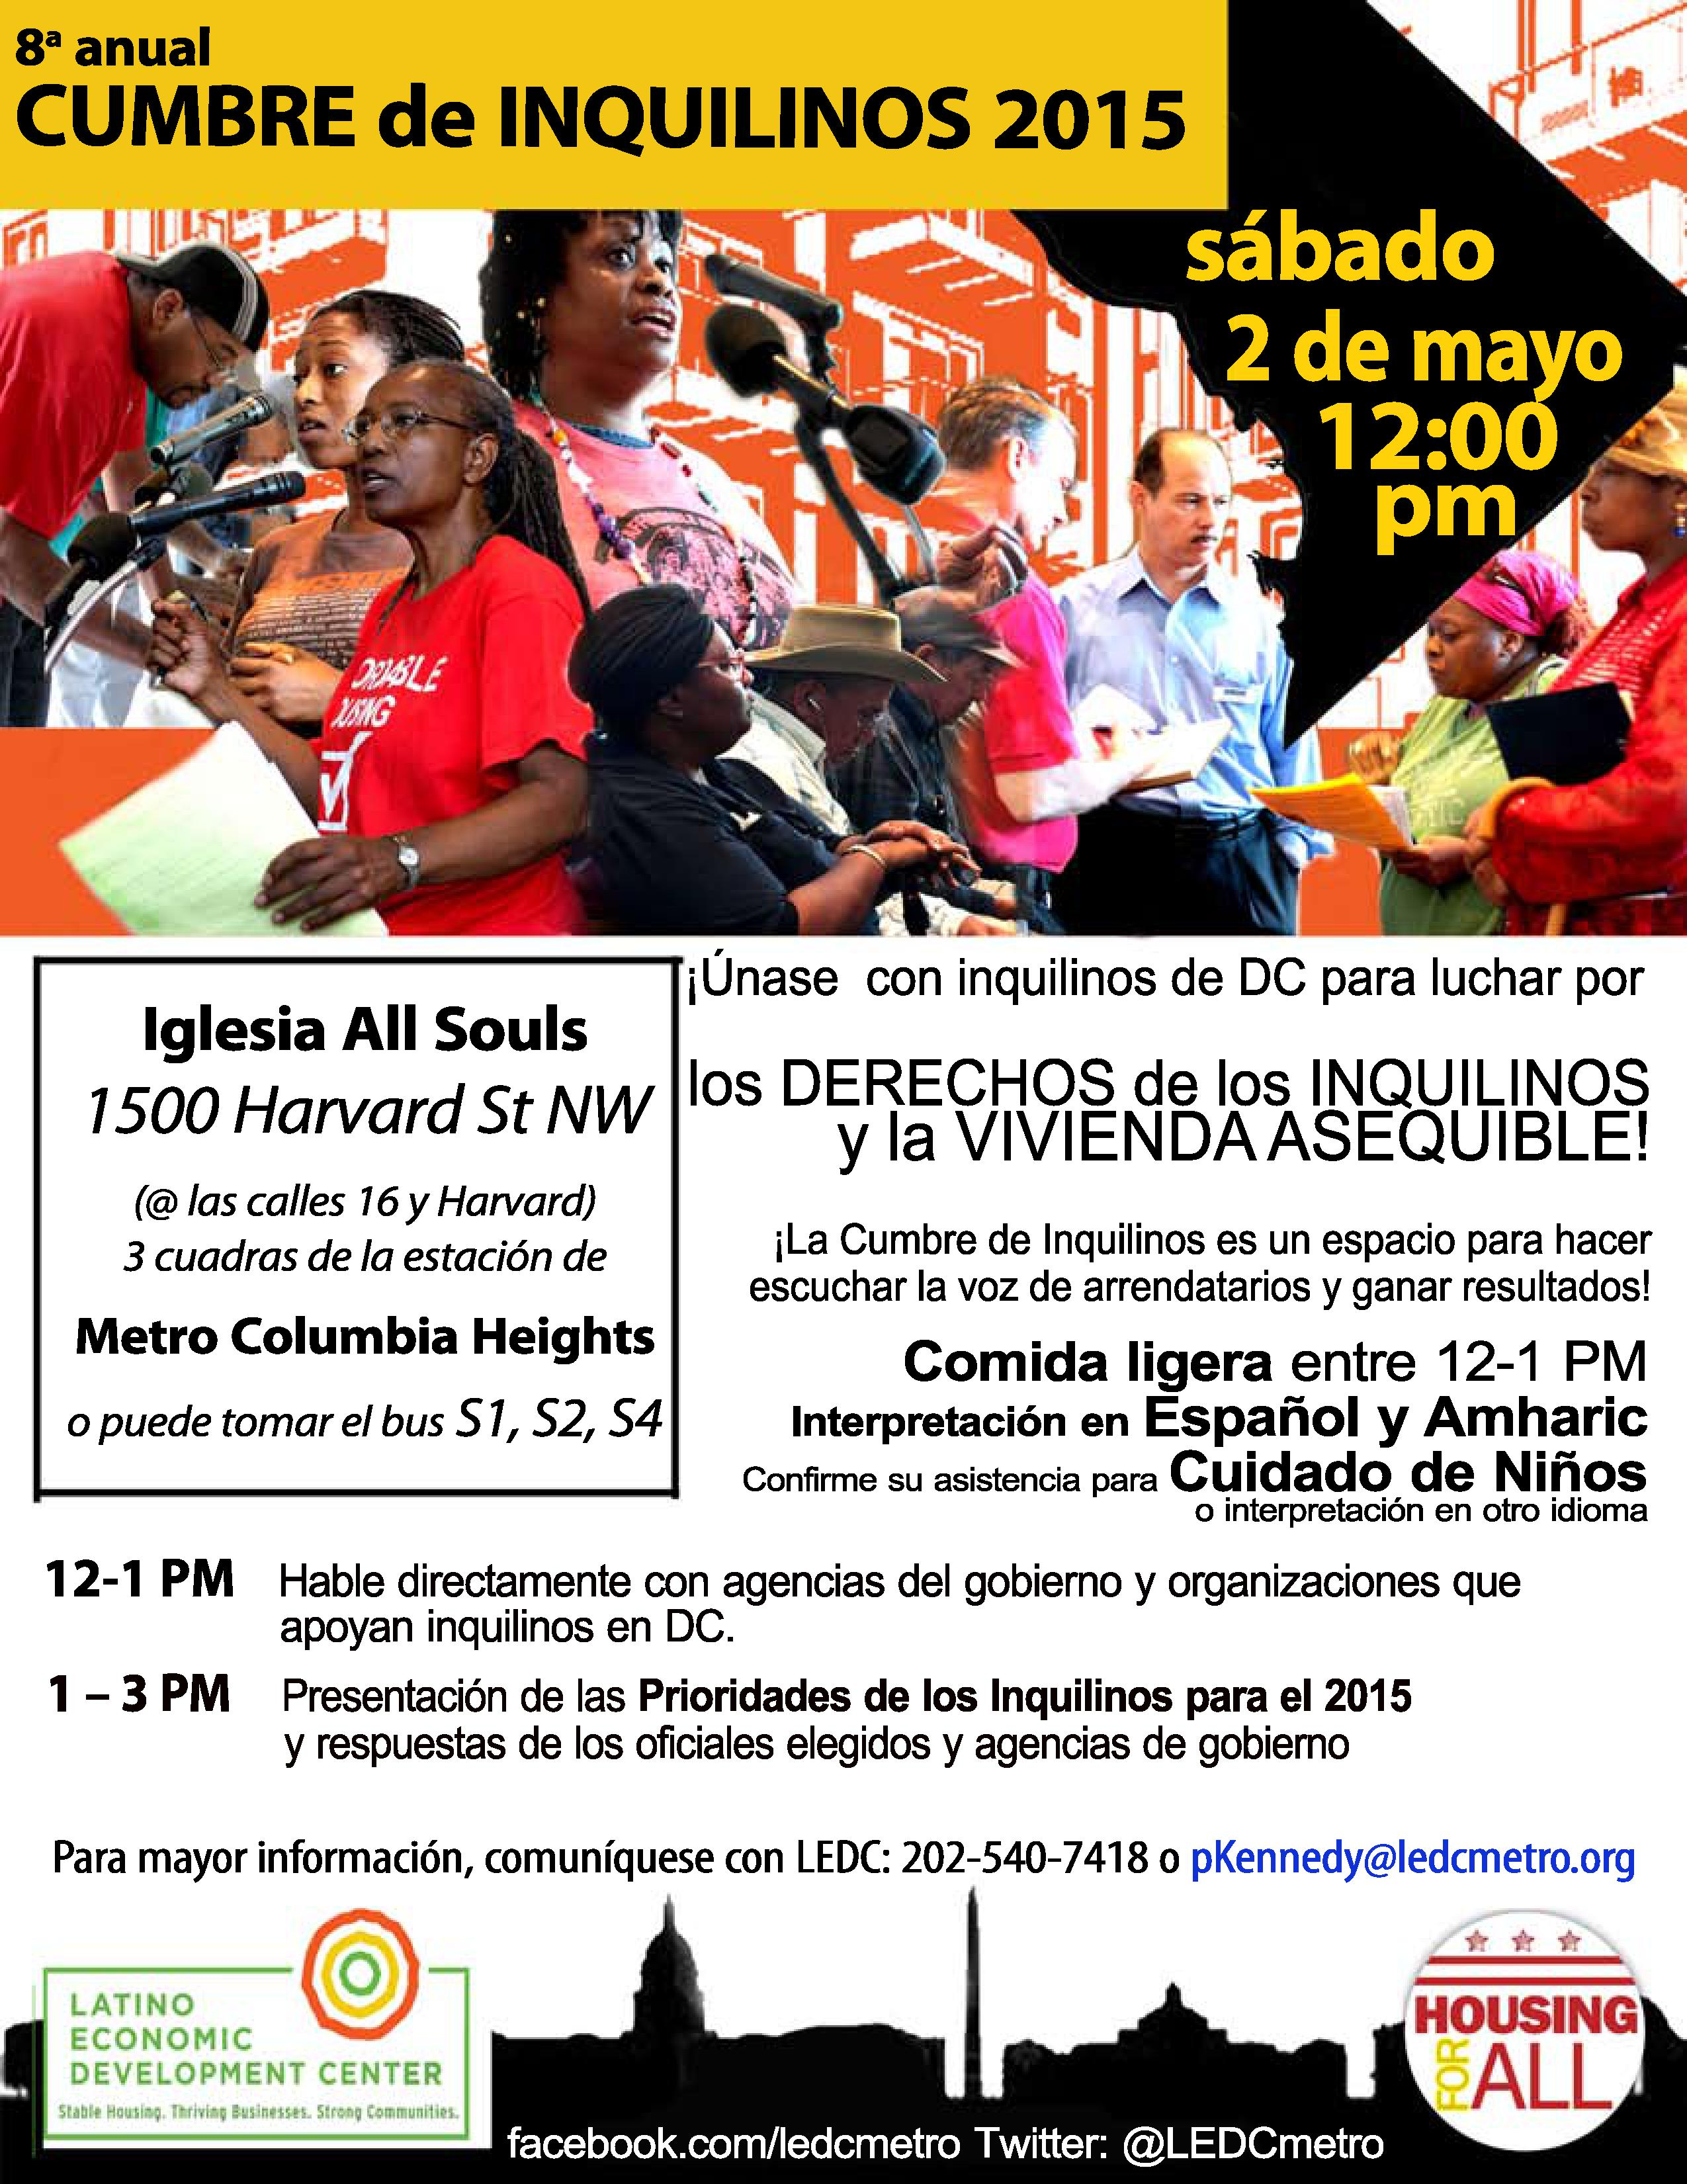 2015_Spanish_Town_Hall_Flyer_-_jpeg.jpg